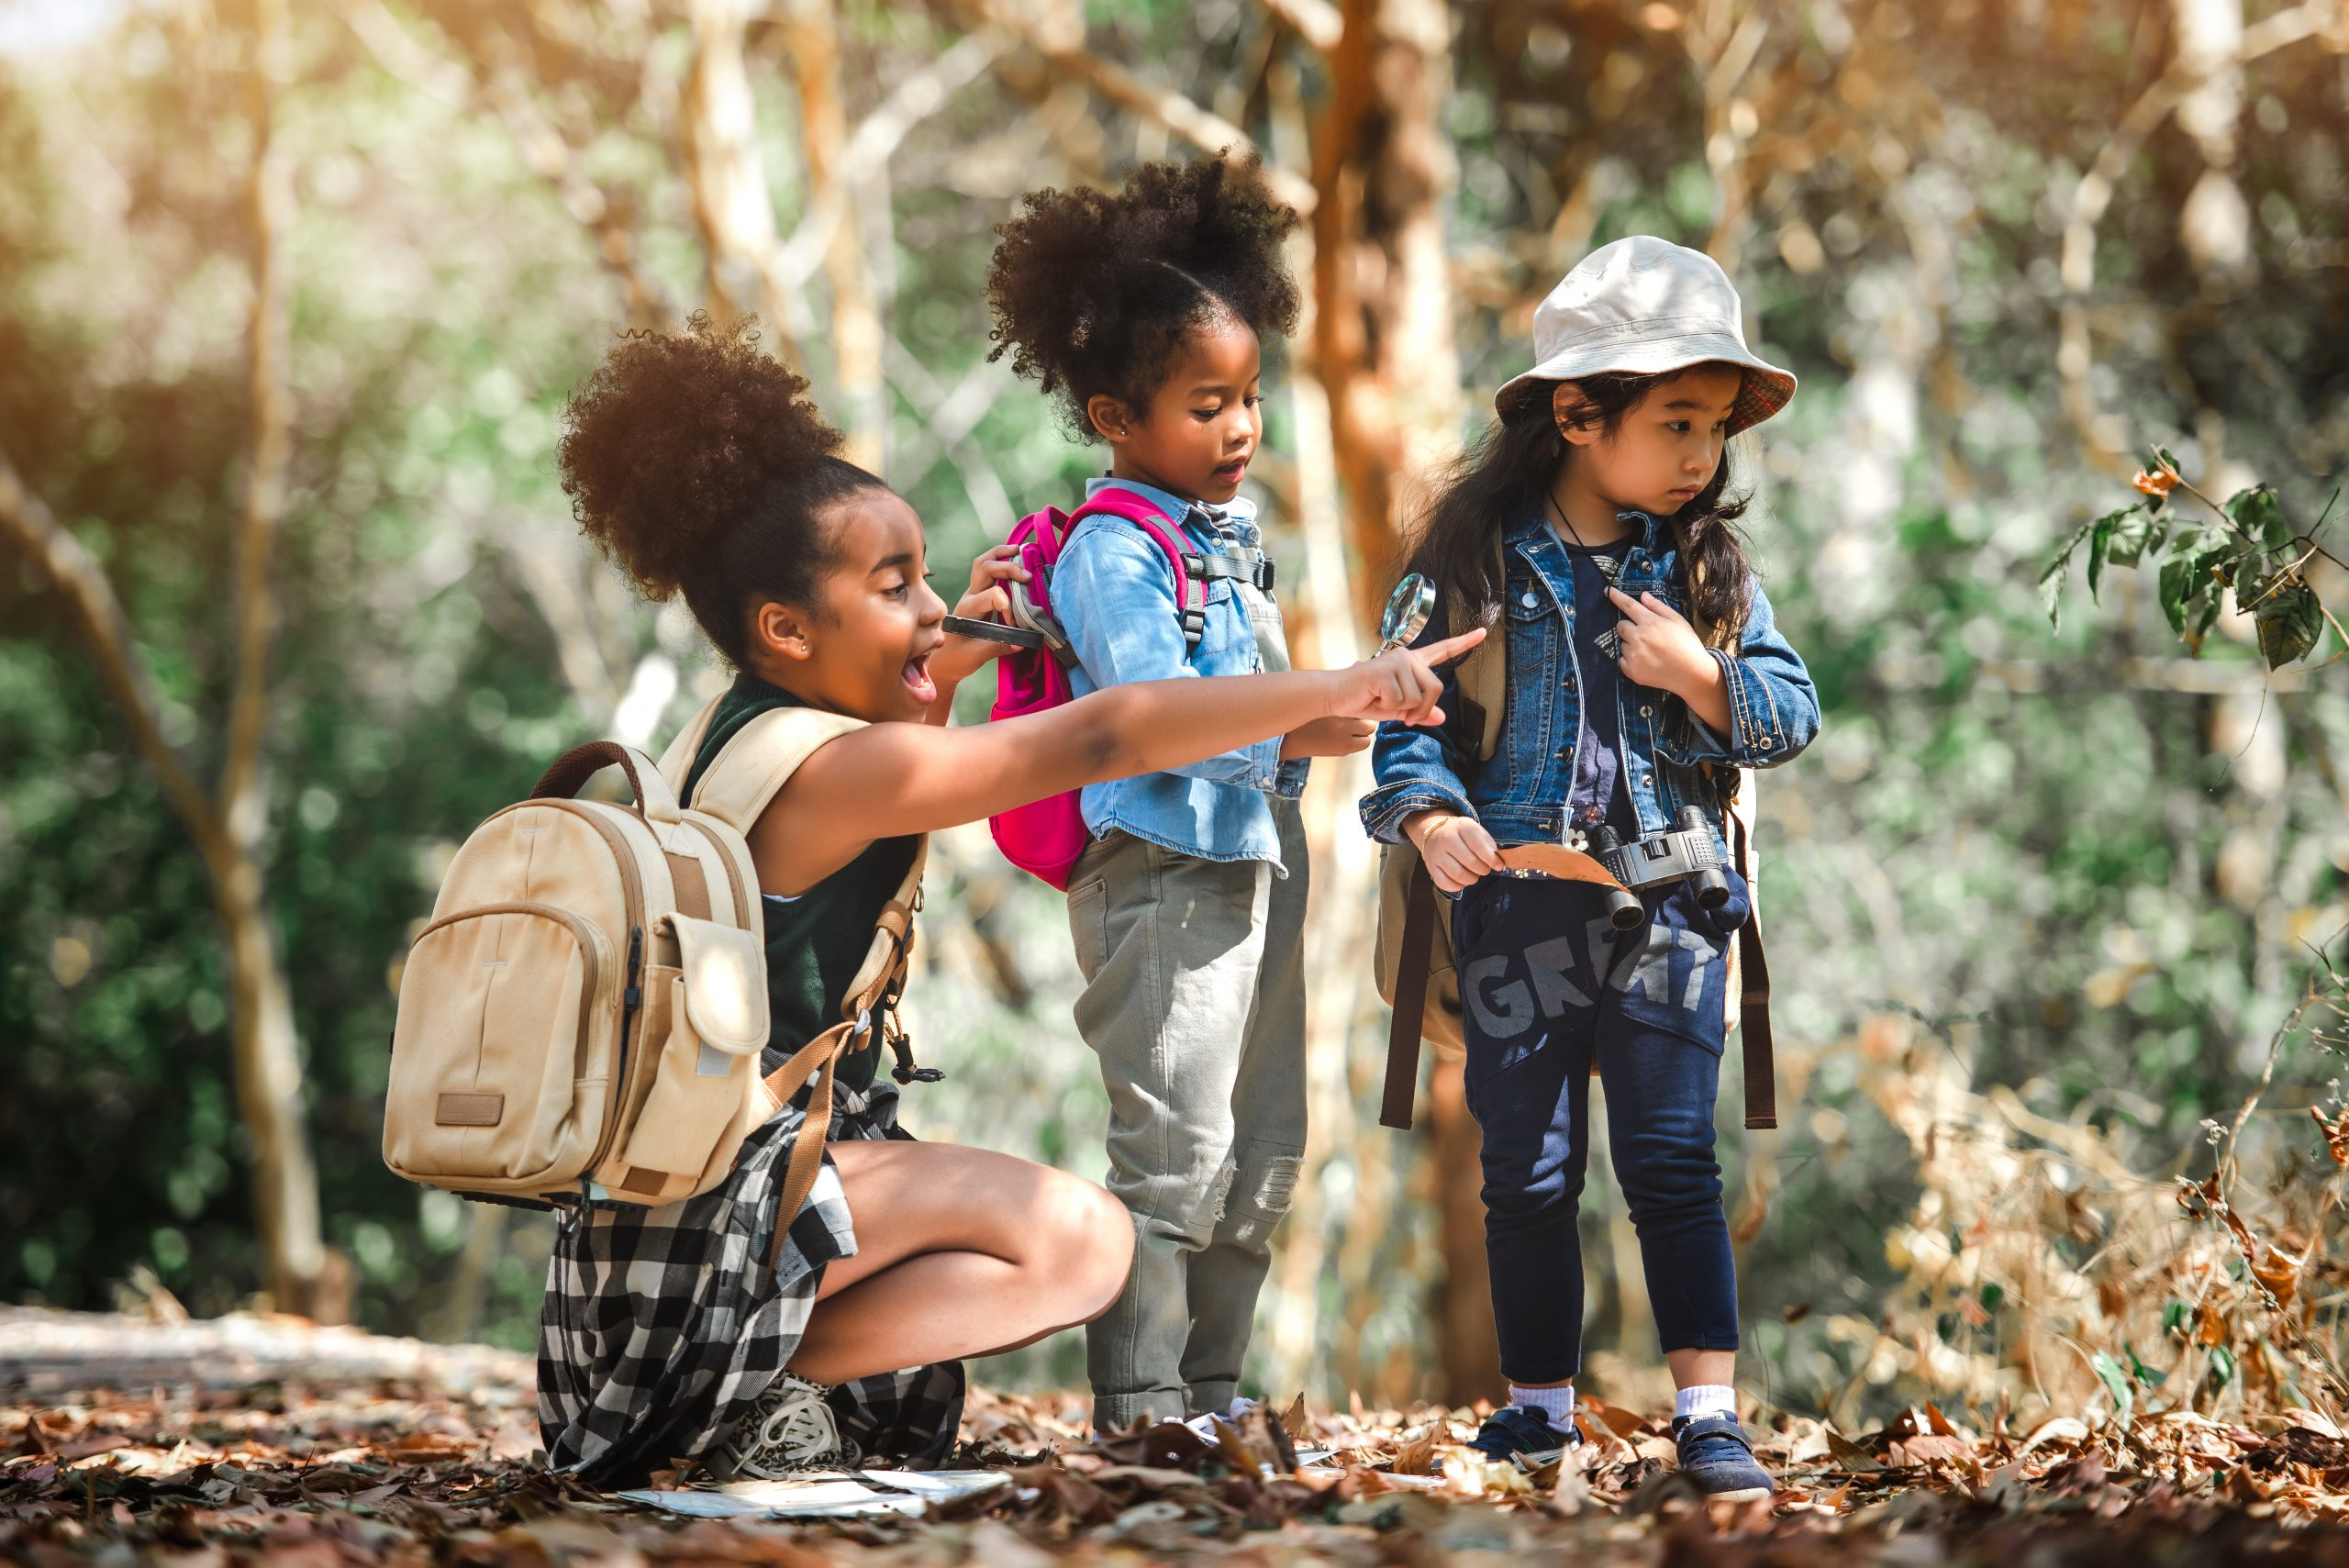 Camping Reduces Kids' Screen Time